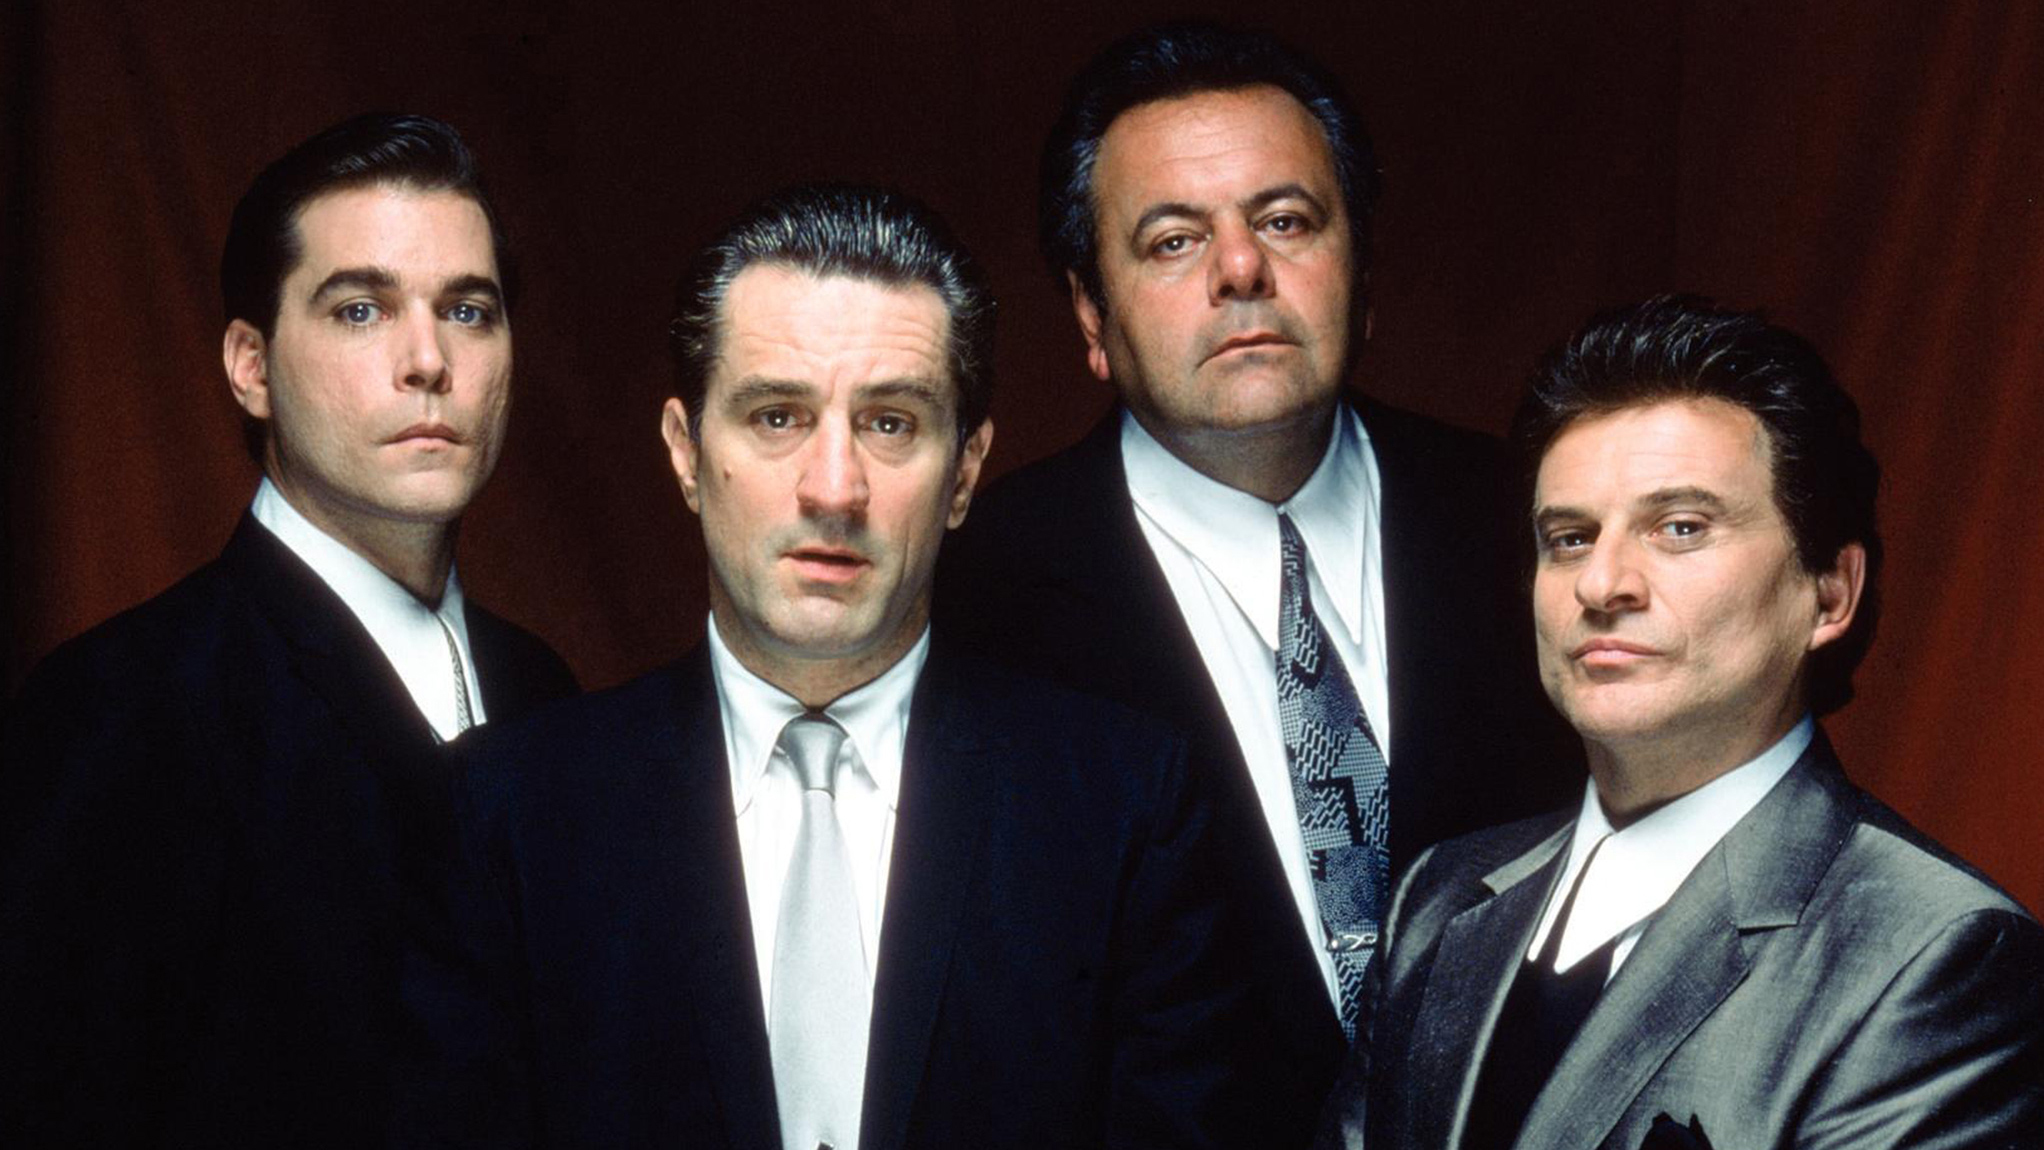 The 50 best gangster movies of all time